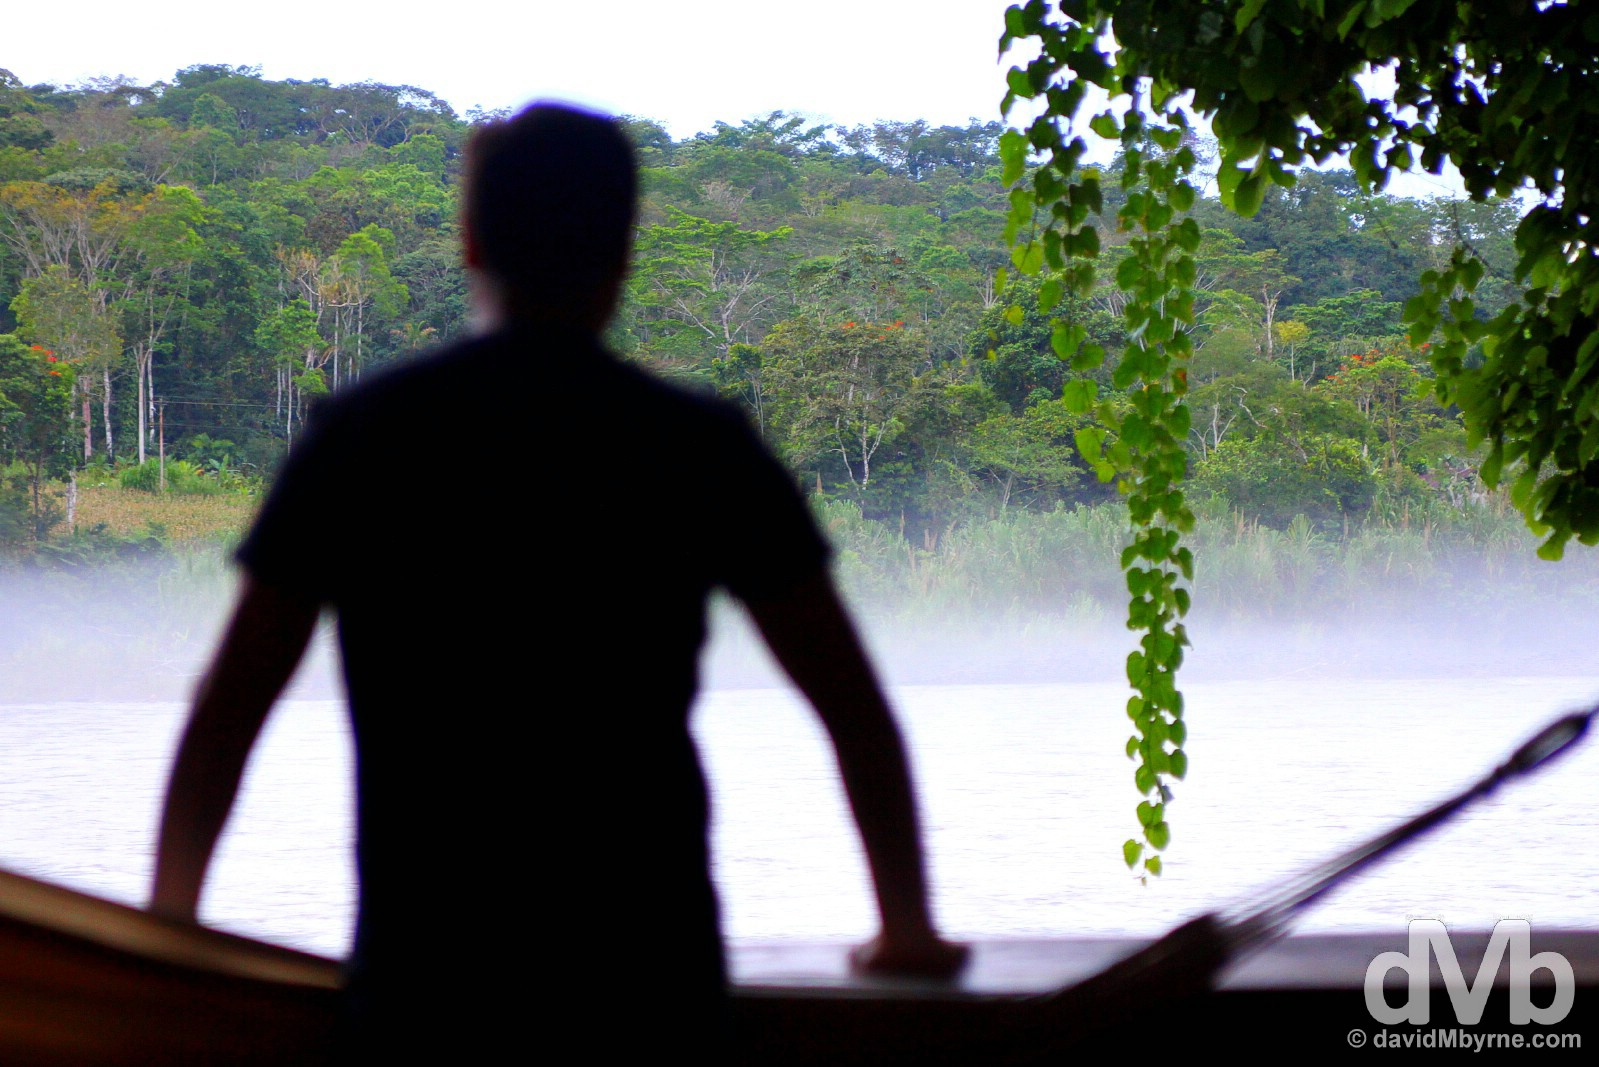 Admiring the rain forest & Napo River view from lodge 13 of the Cotococha Amazon Lodge, Ecuador. July 12, 2015.